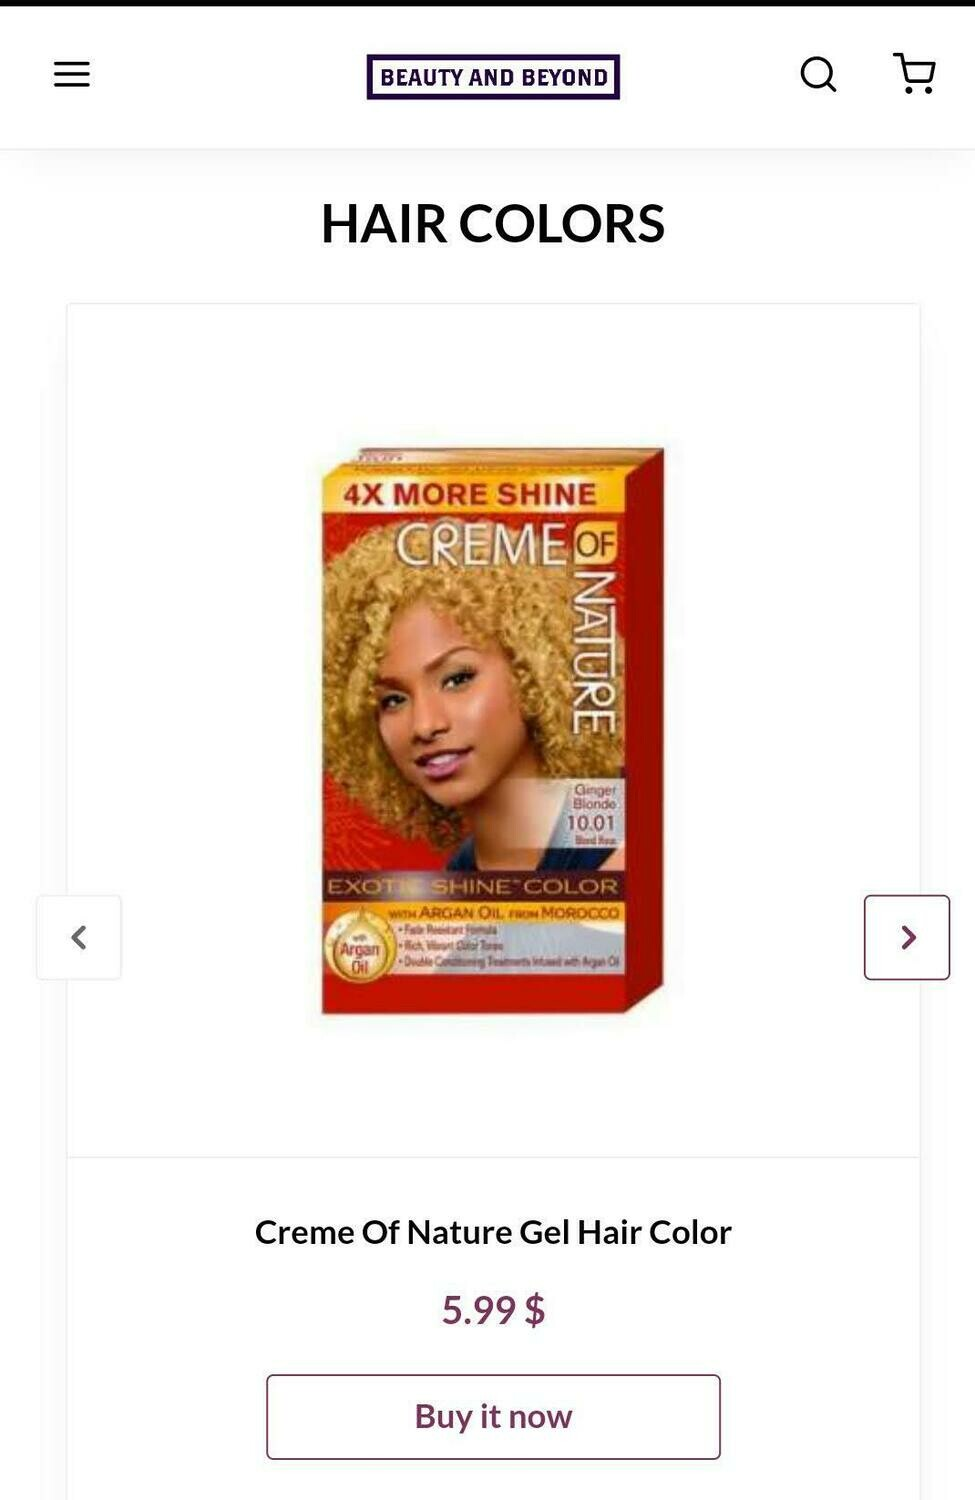 Creme Of Nature Gel Hair Color